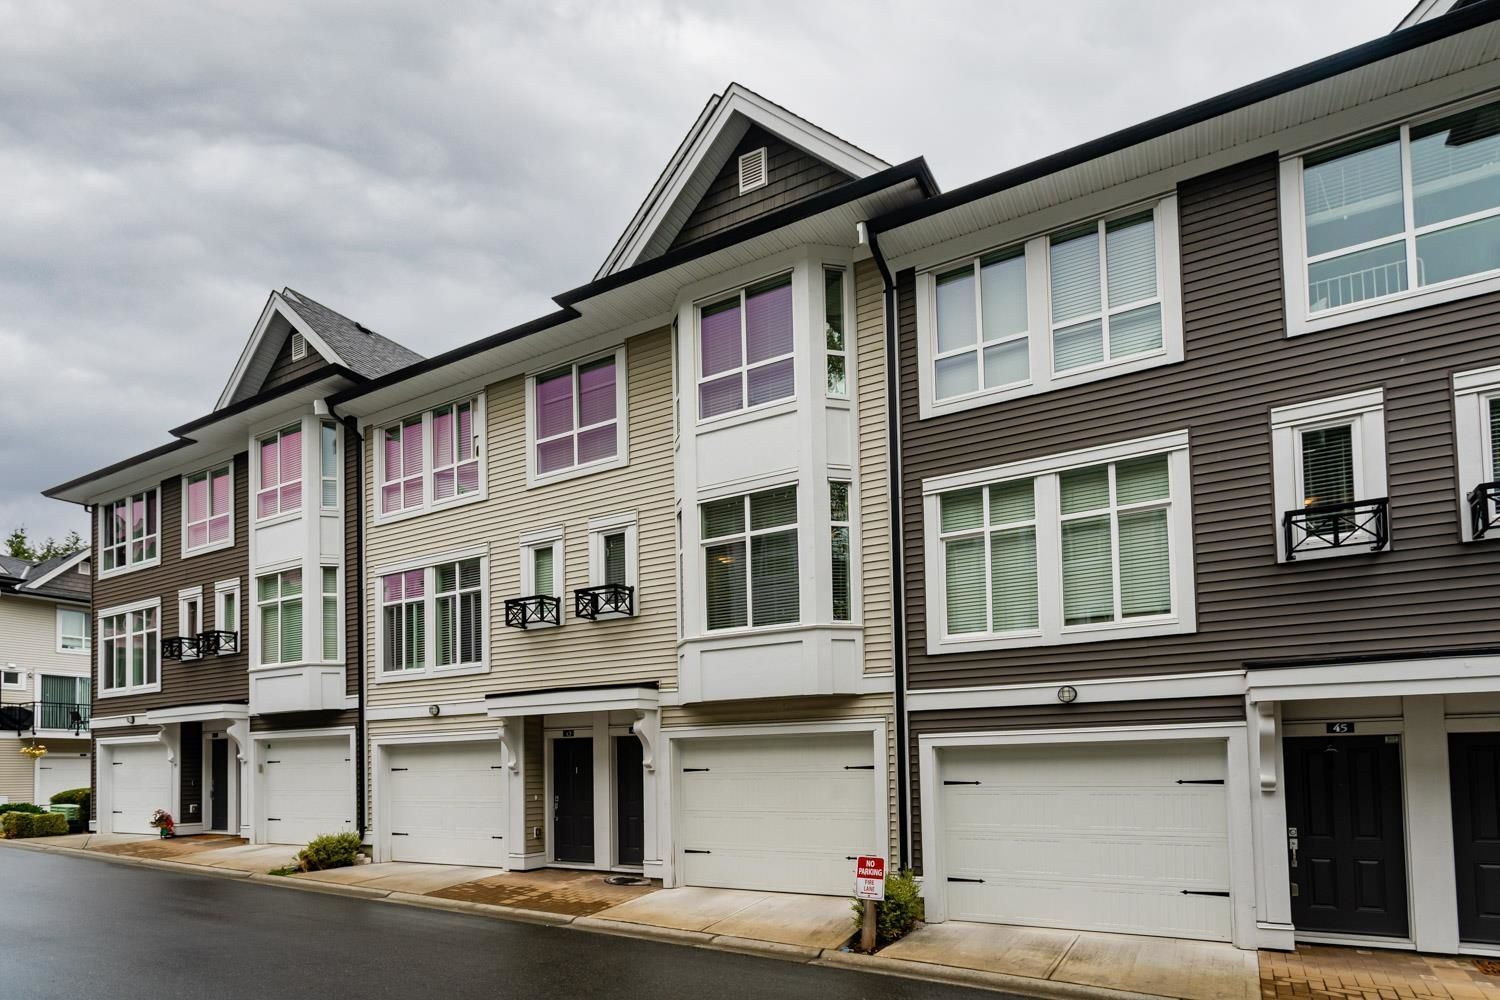 """Main Photo: 44 14433 60 Avenue in Surrey: Sullivan Station Townhouse for sale in """"Brixton"""" : MLS®# R2610172"""